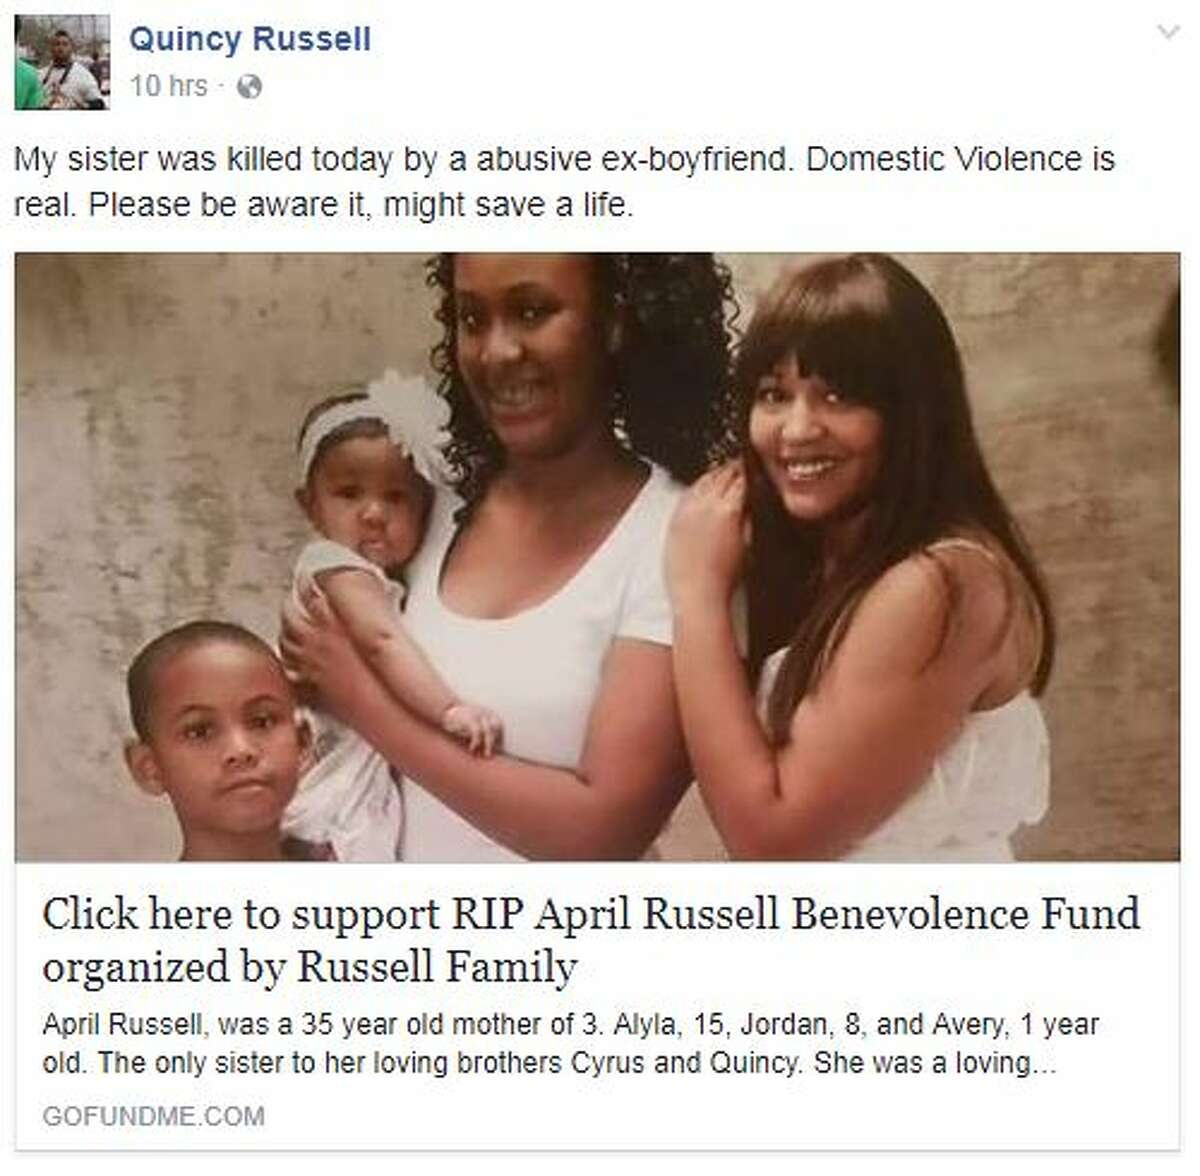 After news of April Russell's death spread, tributes poured in for the San Antonio mother who was fatally shot in an alleged domestic violence incident on Monday, June 5, 2017.